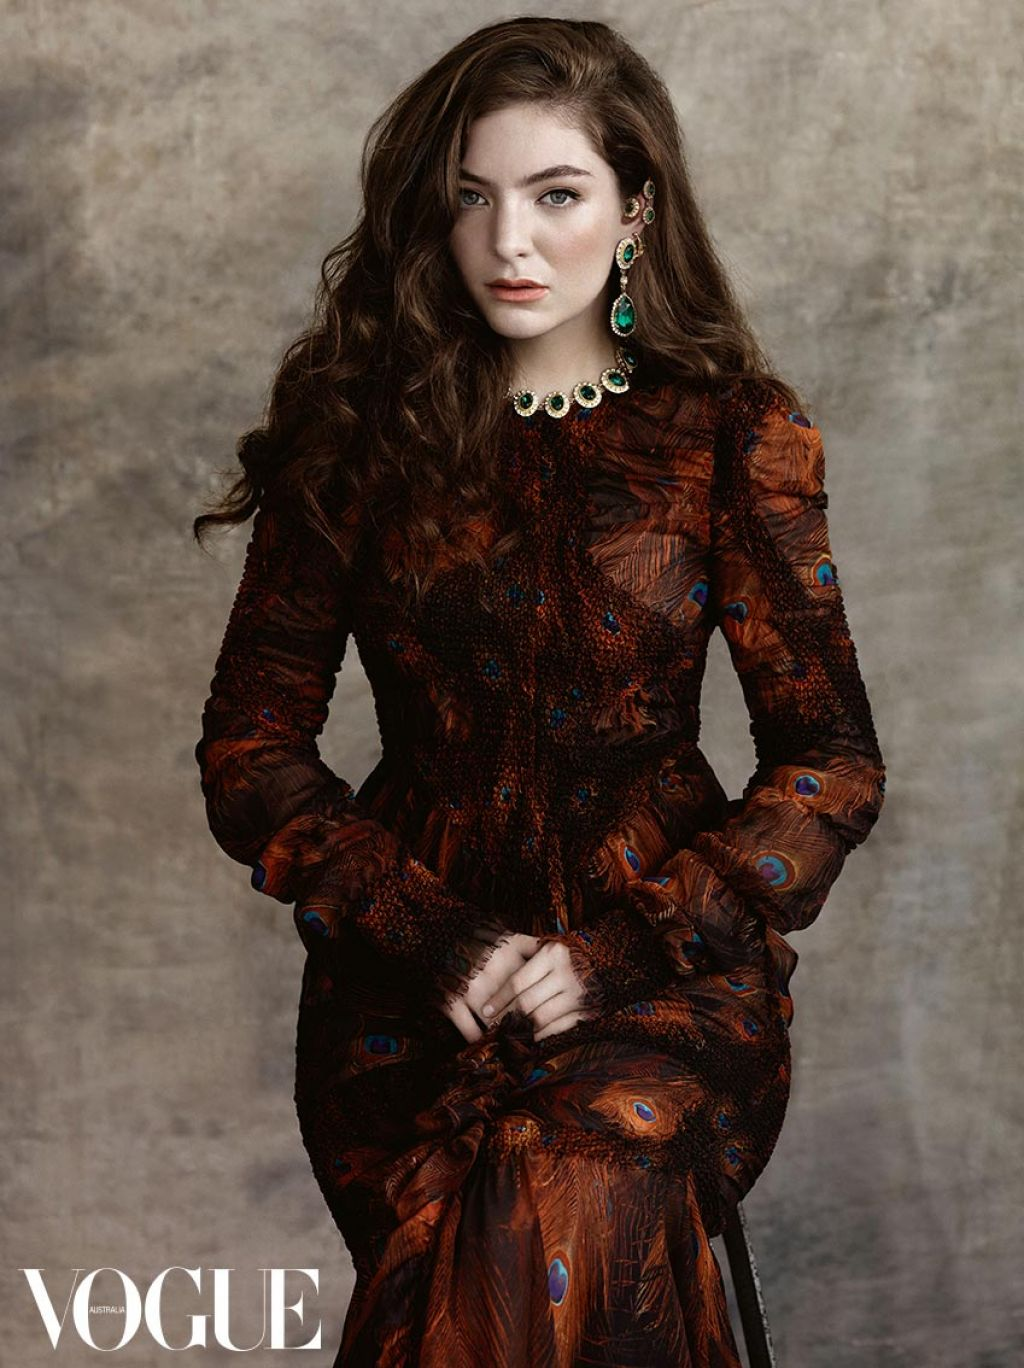 lorde vogue magazine australia july 2015